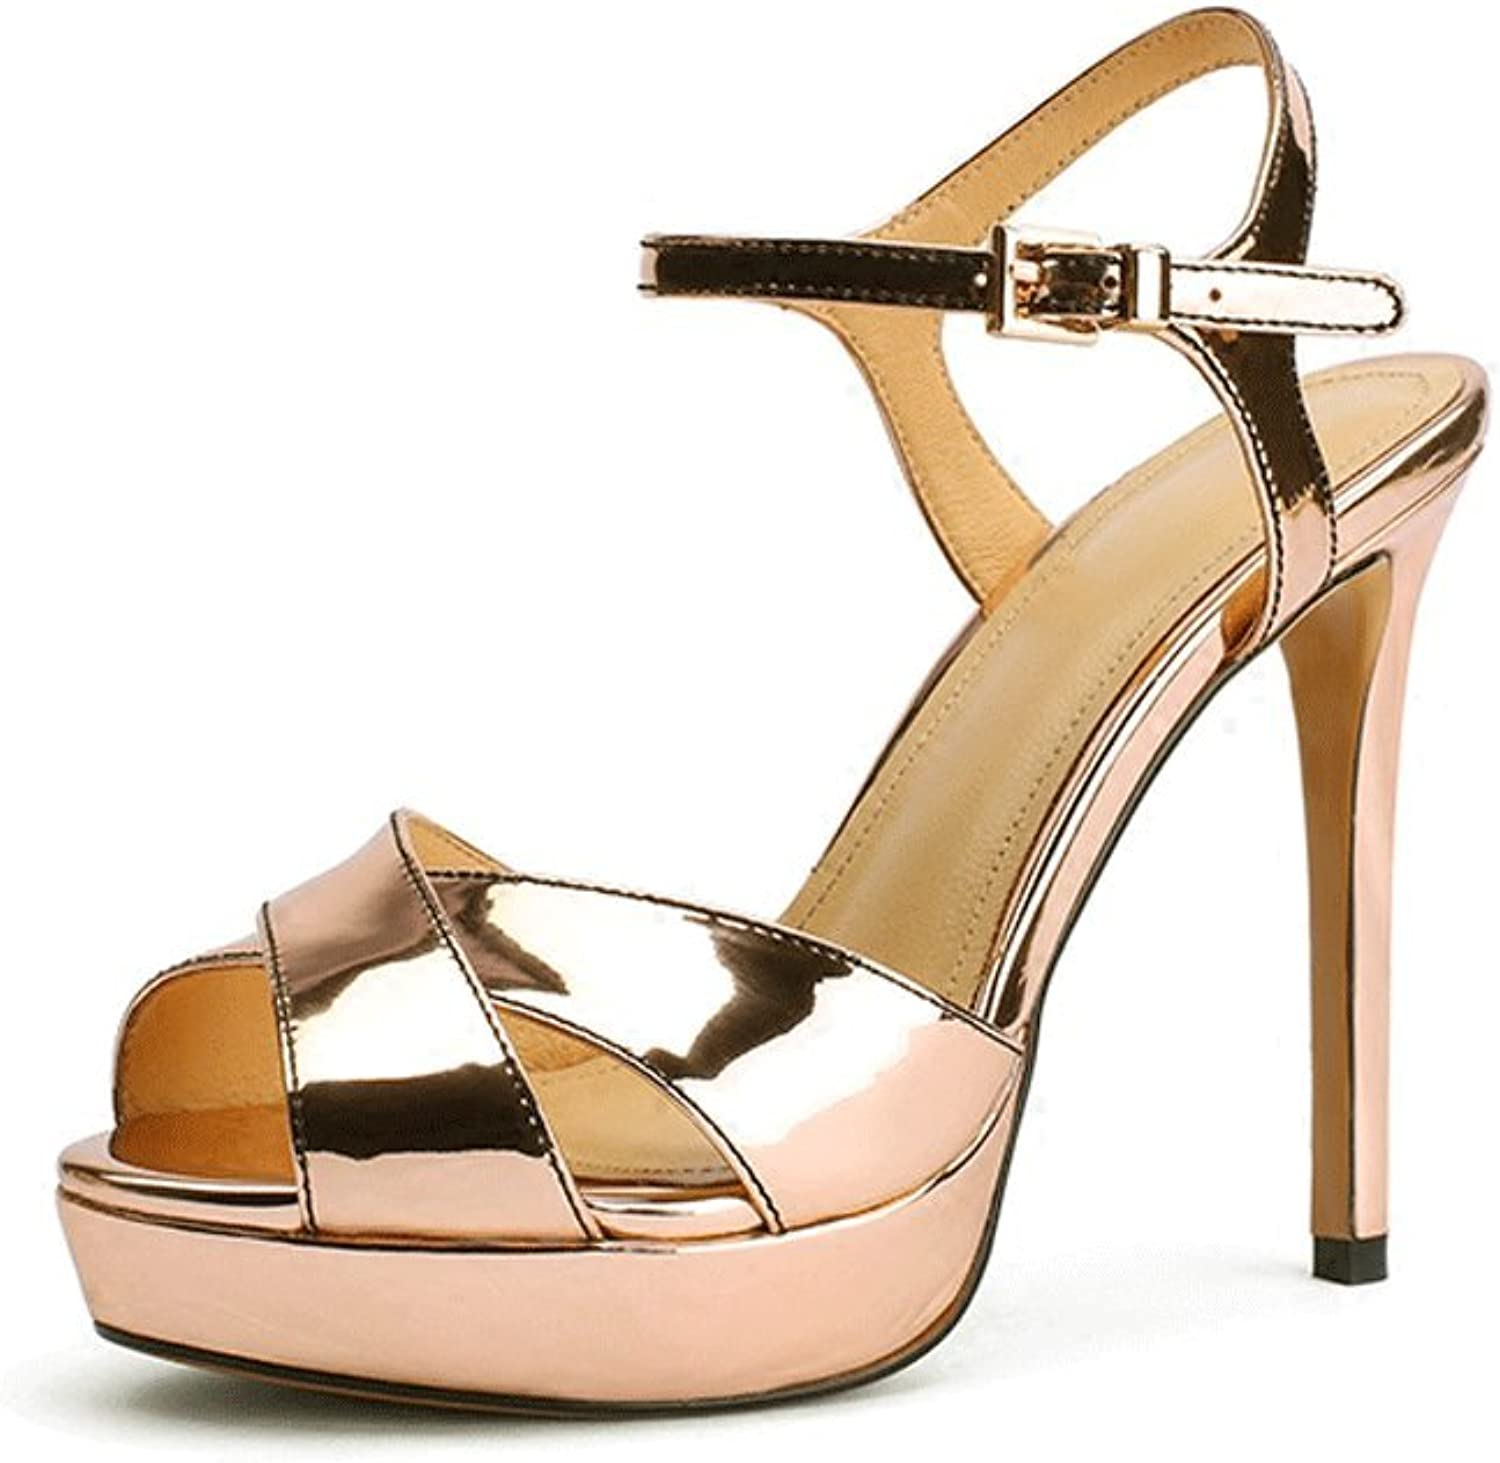 WANGXIAOLIN Button Buckle gold Leather shoes Platform Fine Sandals High-Heeled Sandals (Size   37)